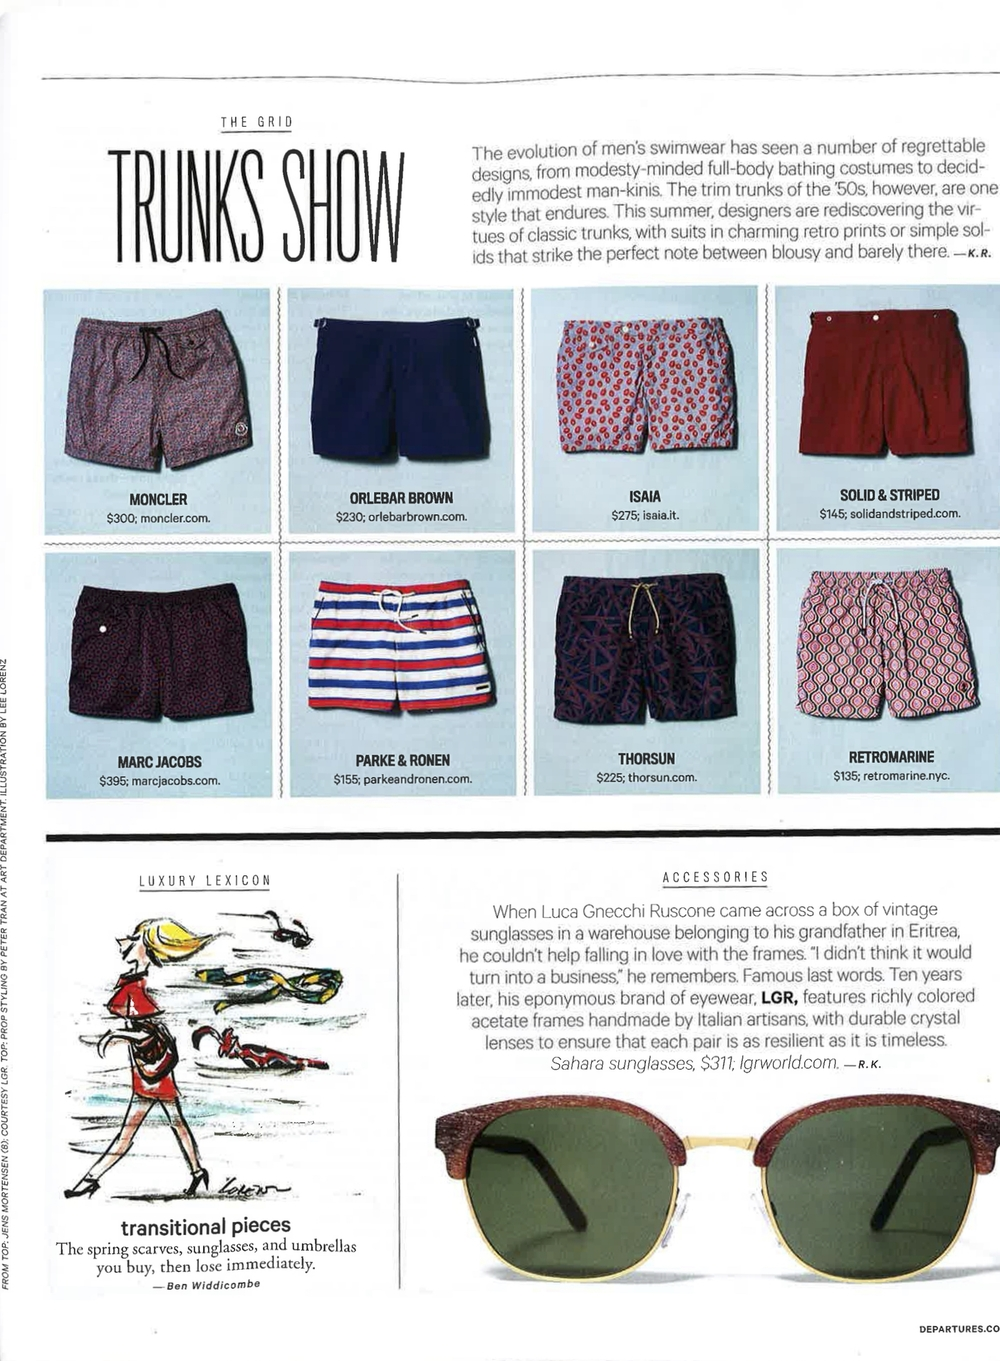 Departures, Departures Magazine, The Grid, Trunks Show, Thorsun, Thorsun Swim